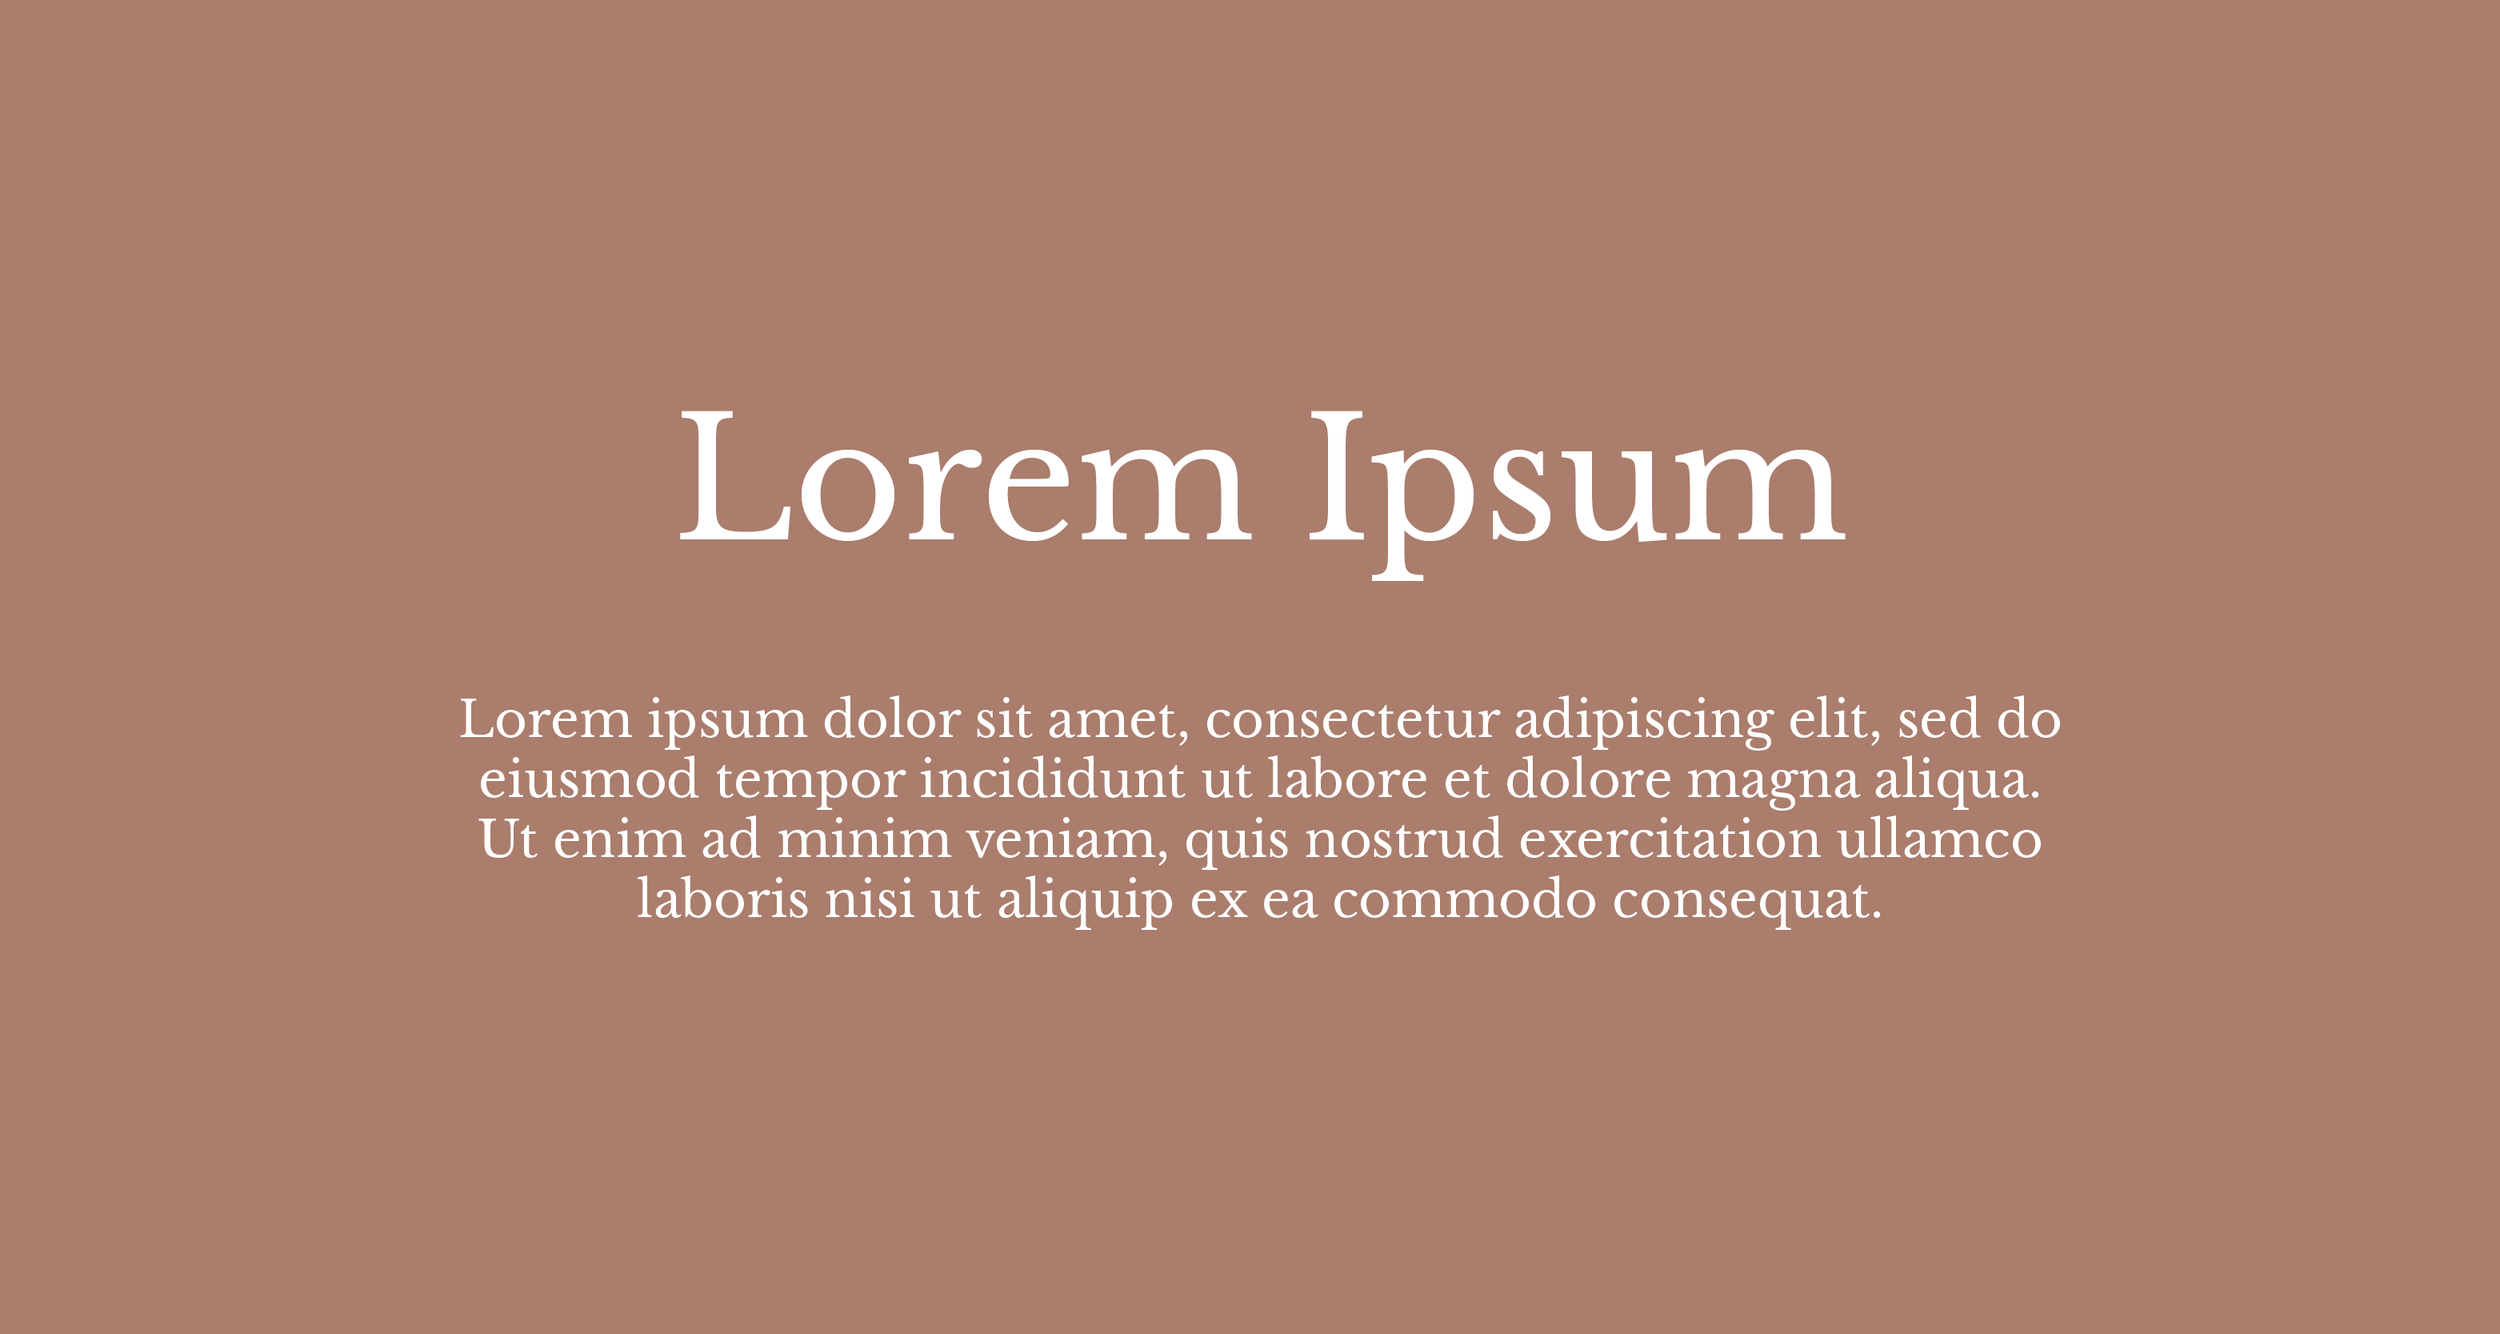 Libre Baskerville used as both header and body font.